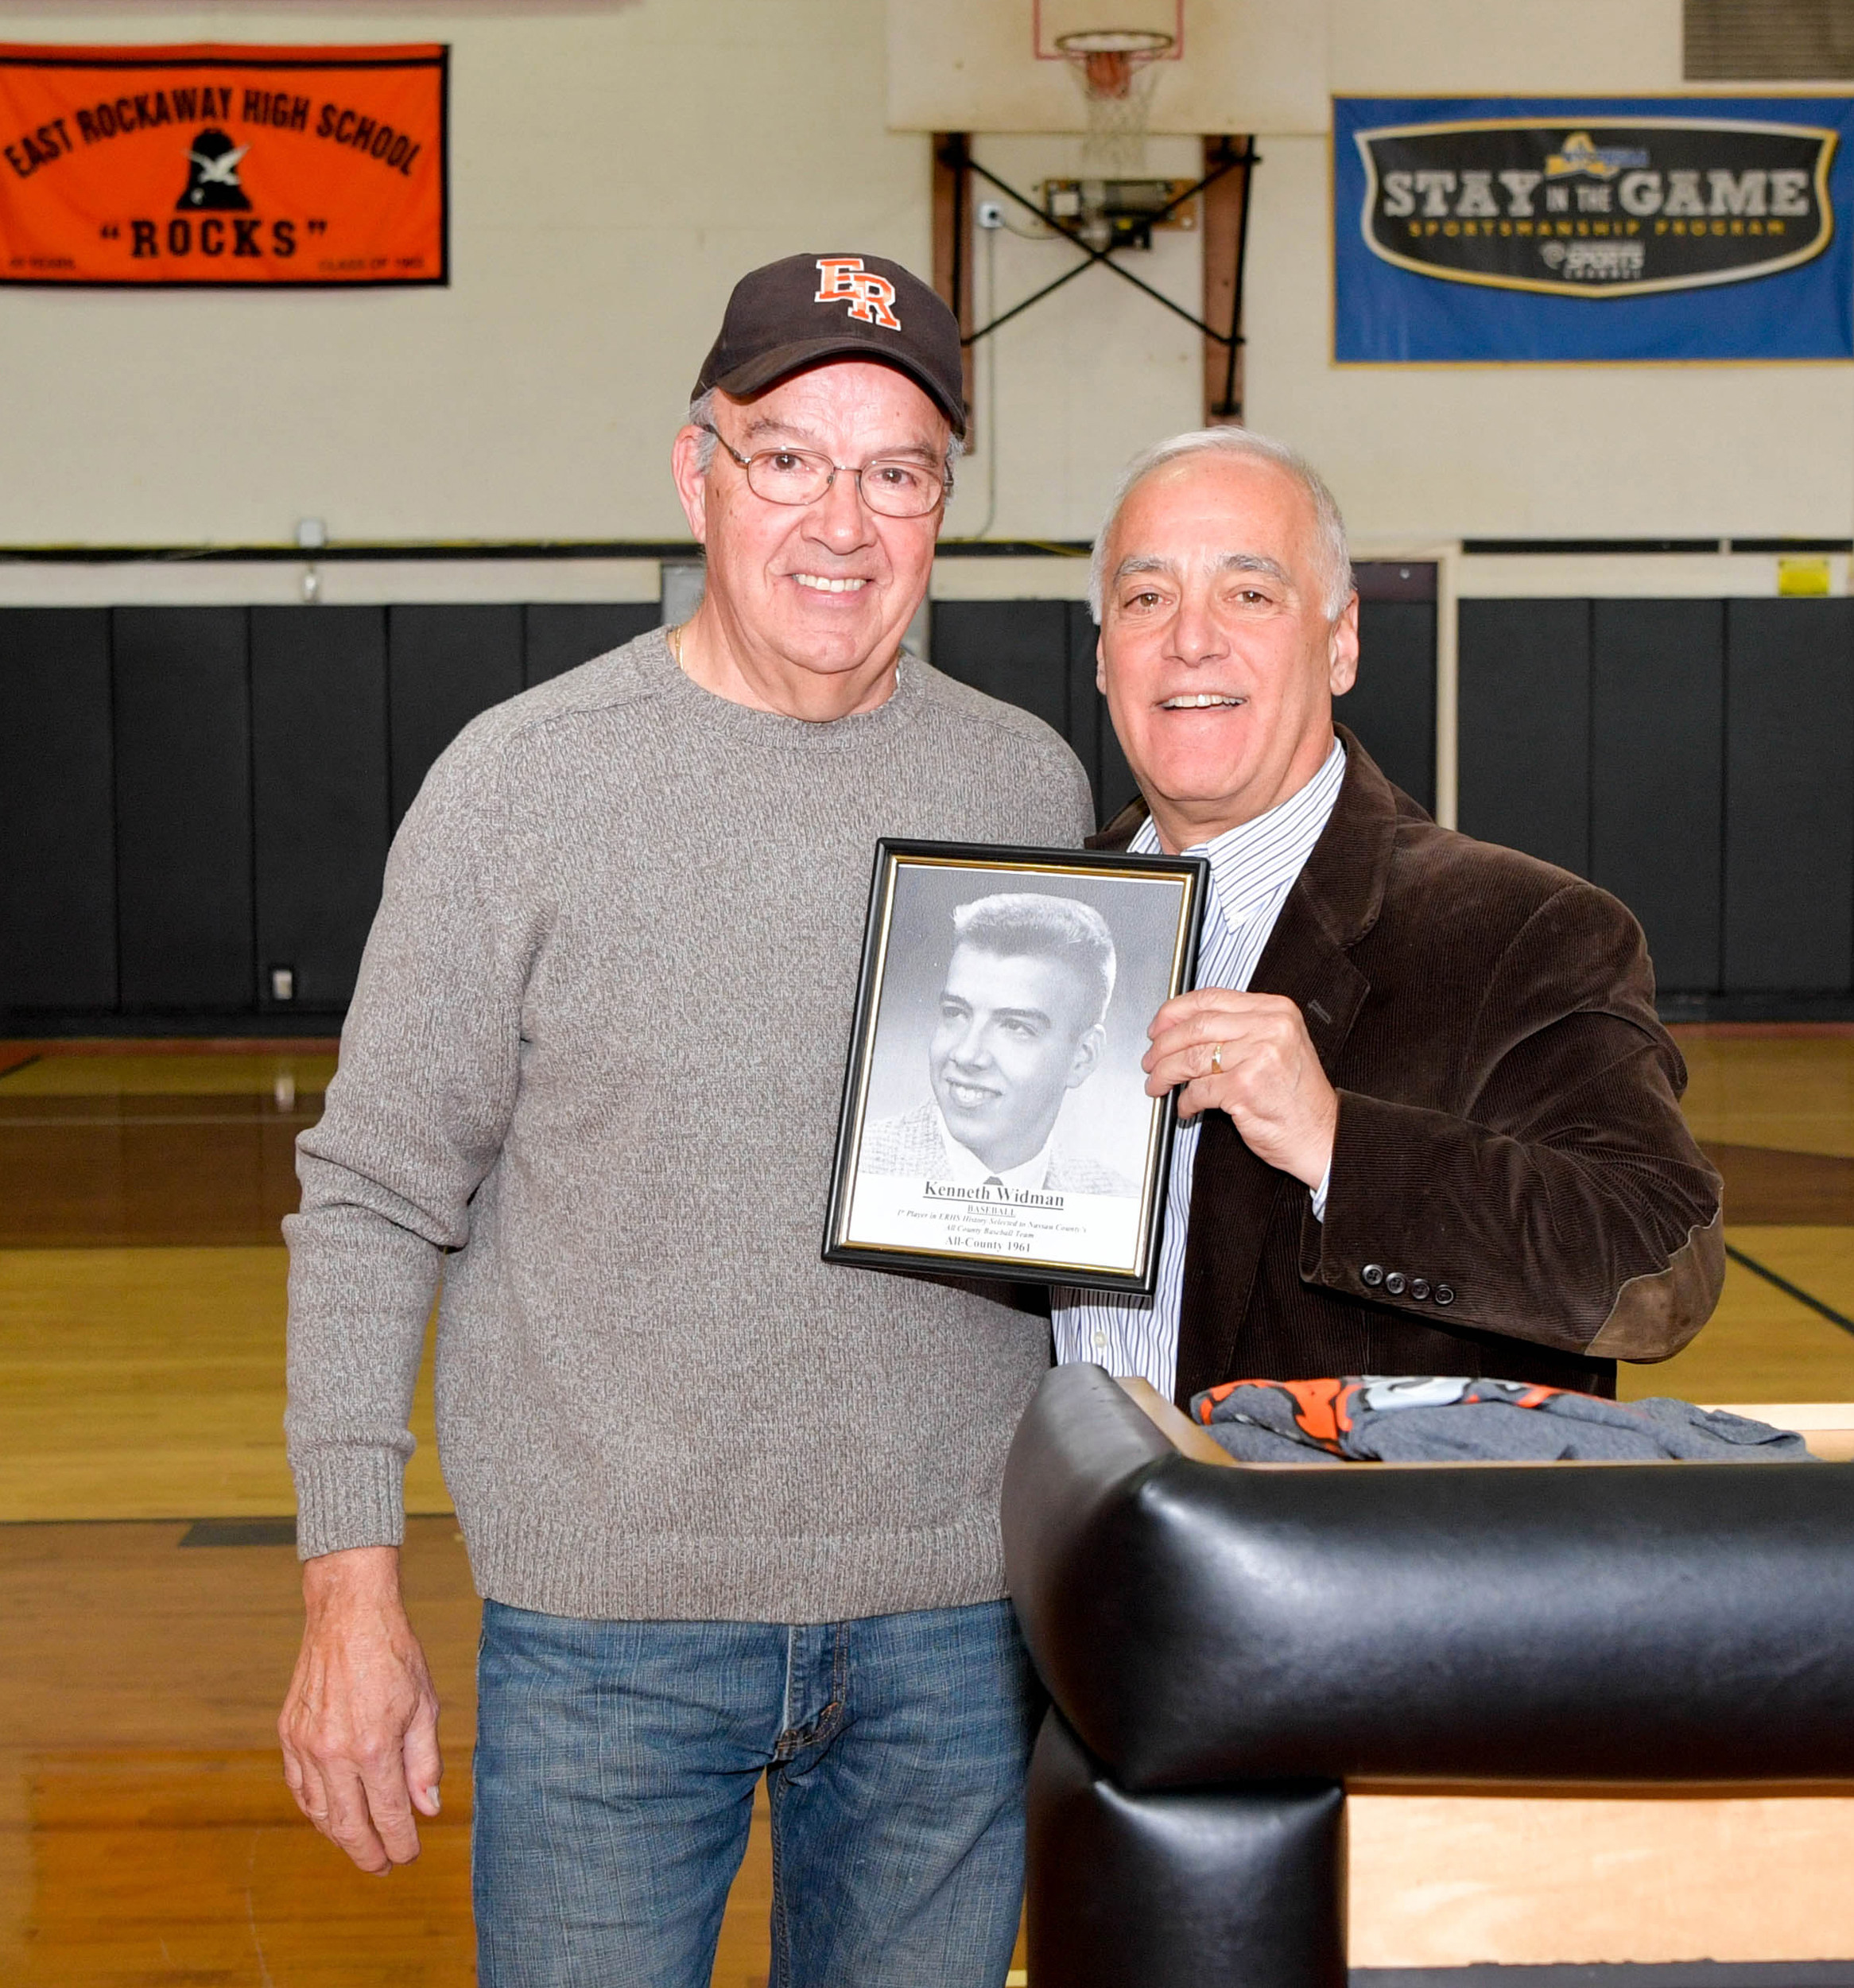 Former baseball star Ken Widman, left, was inducted into East Rockaway's athletic Wall of Fame this month with a cermony arranged in part by Athletic Director Dom Vulpis, at right.